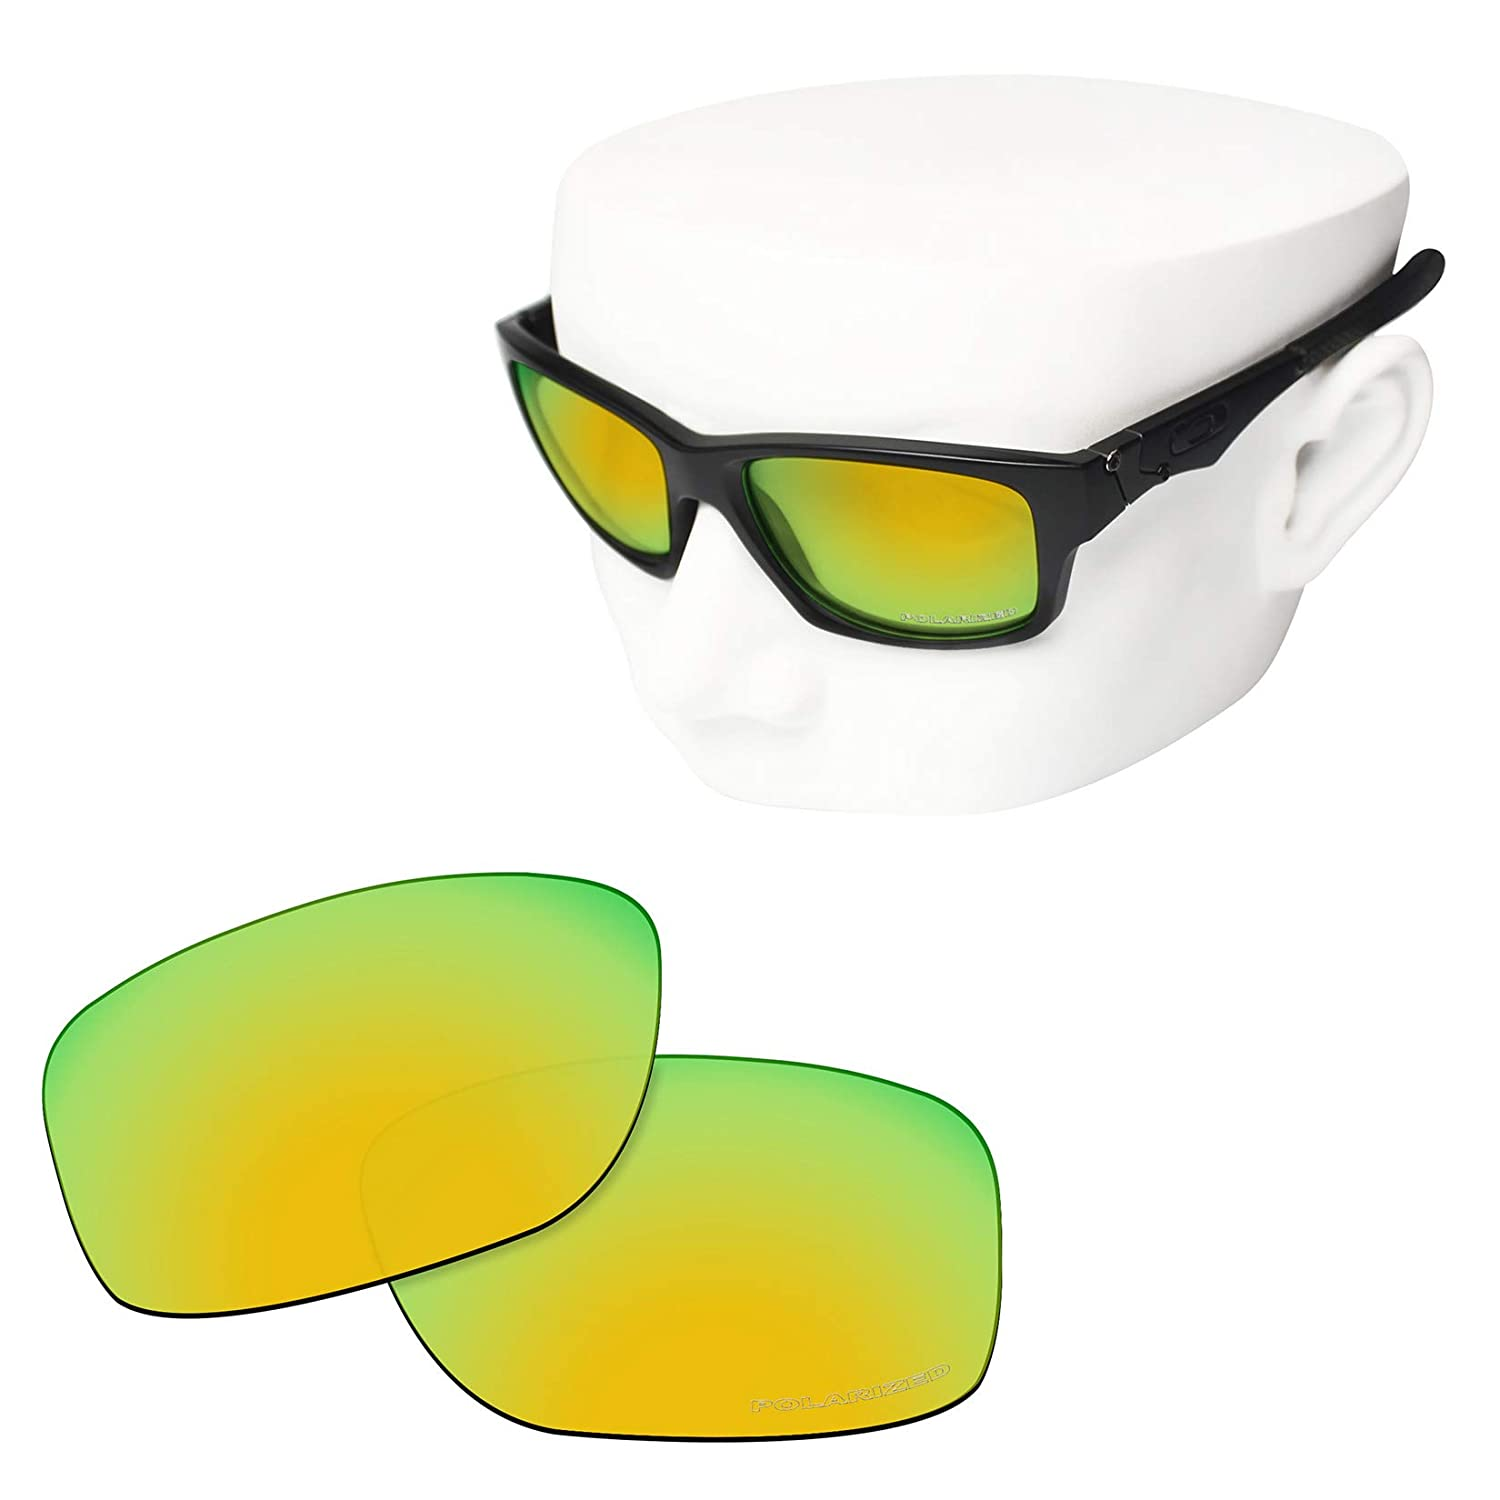 f53e05123b Amazon.com  OOWLIT Replacement Lenses Compatible with Oakley Jupiter  Squared Sunglass 24K Combine8 Polarized  Clothing